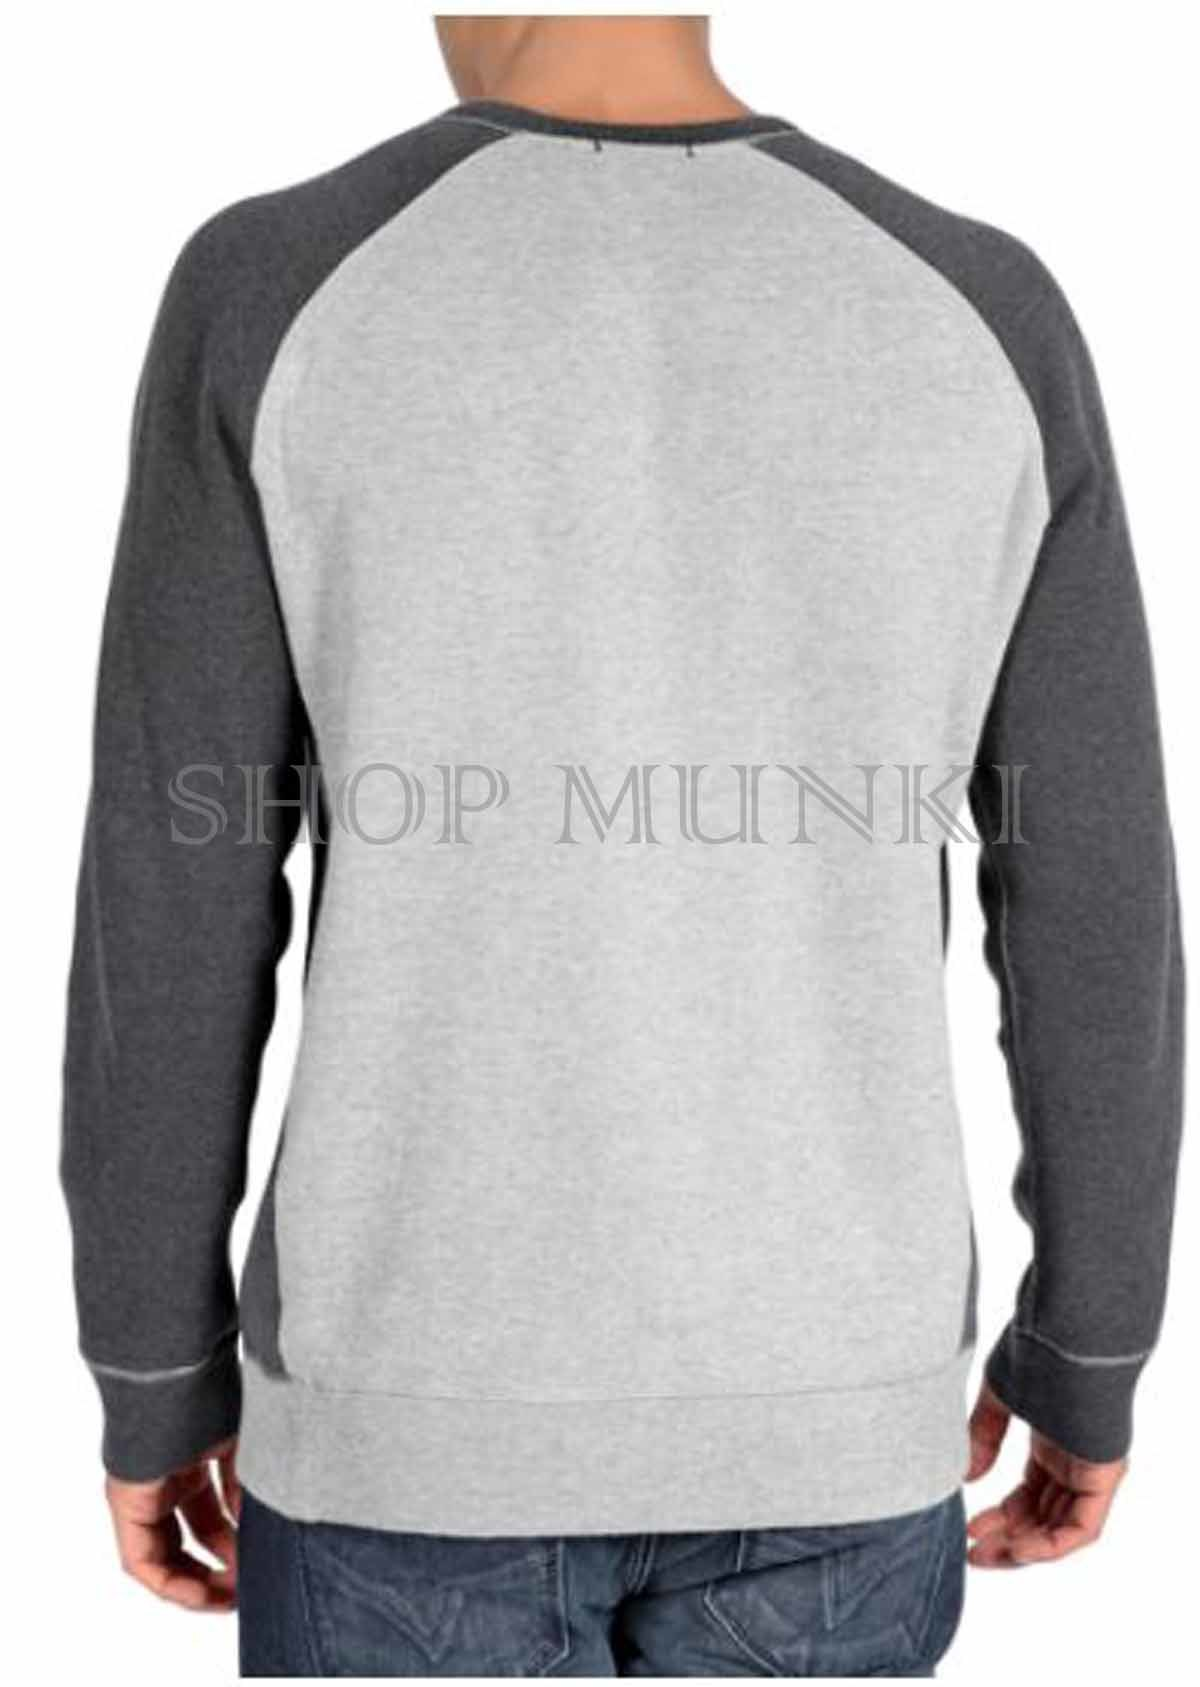 Dkny jeans men 39 s crew neck raglan pullover sweater shirt for Crew neck sweater with collared shirt